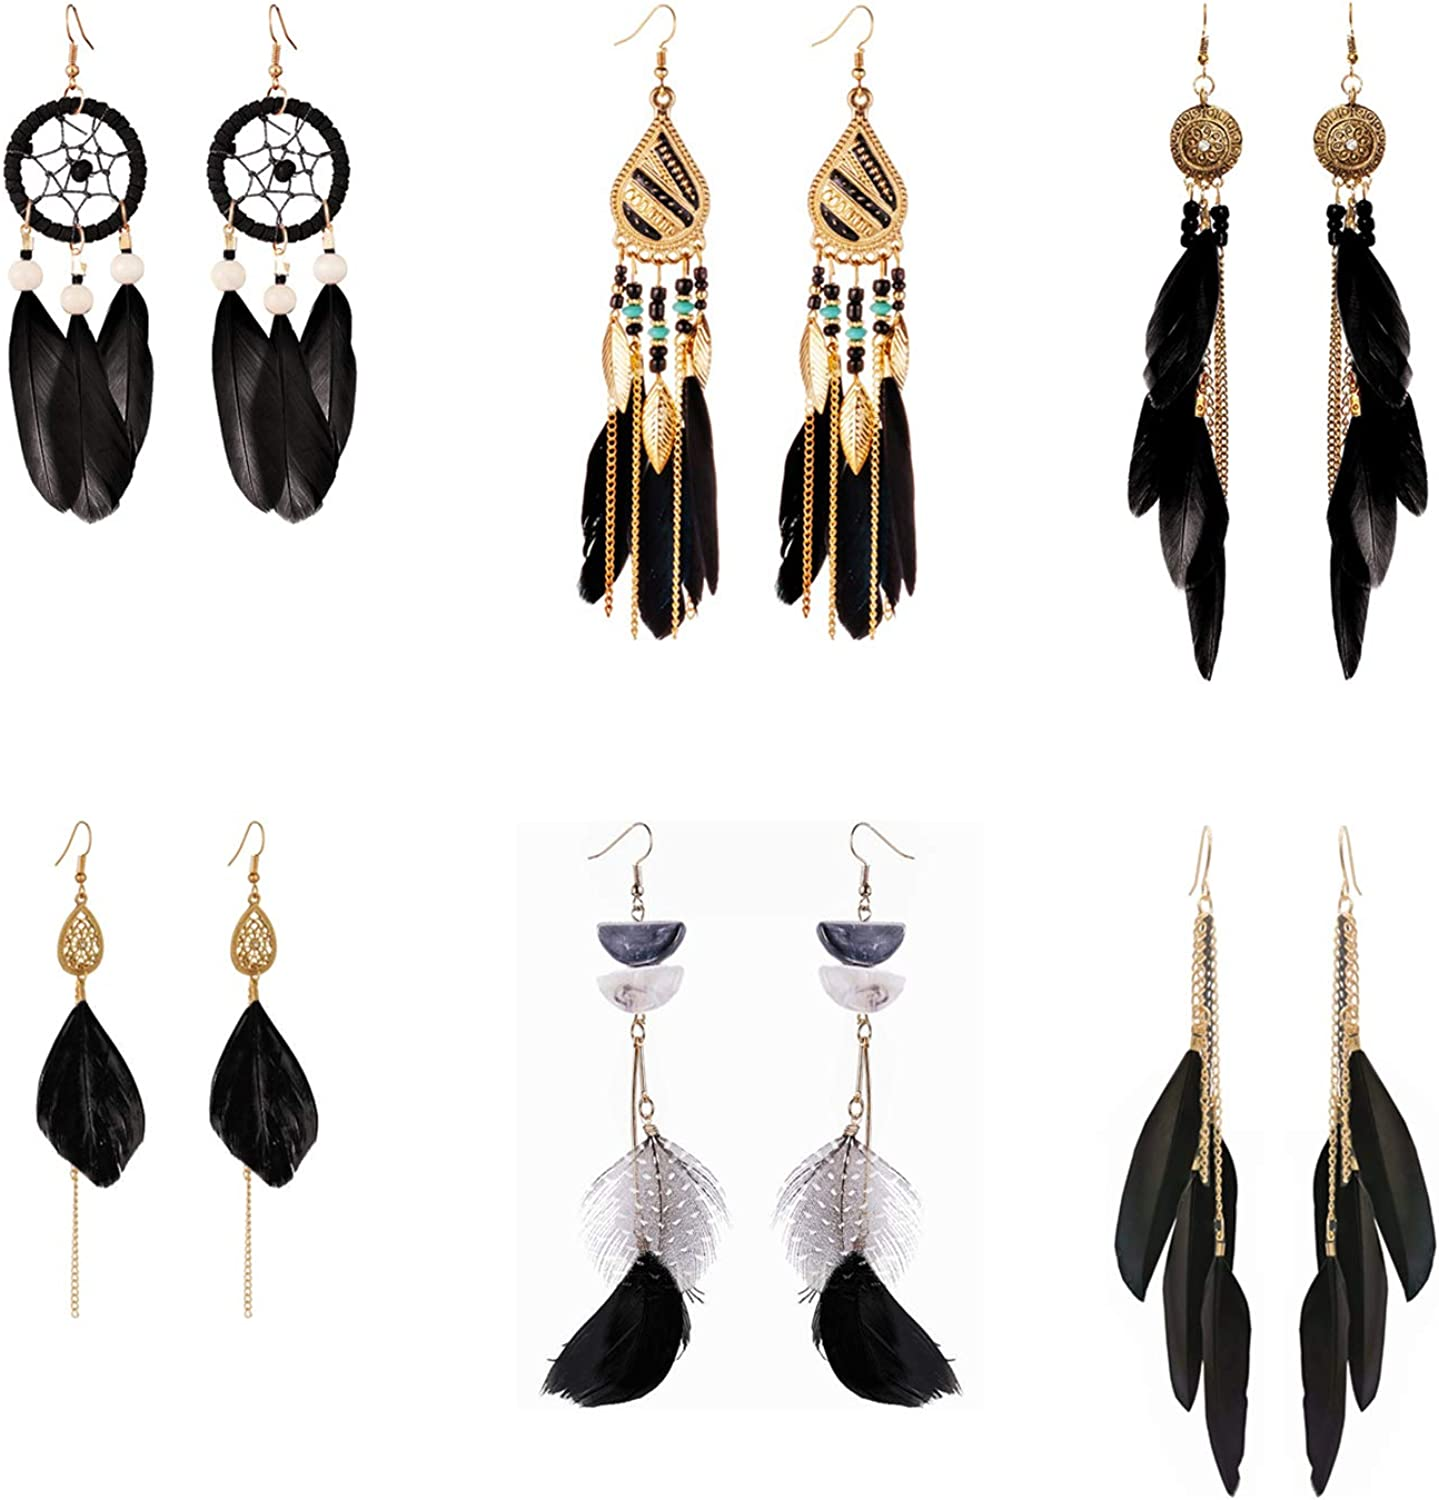 Colorful Bohemian Feather Dangle Drop Earring Gifts for Women Girls Jewelry000001001845